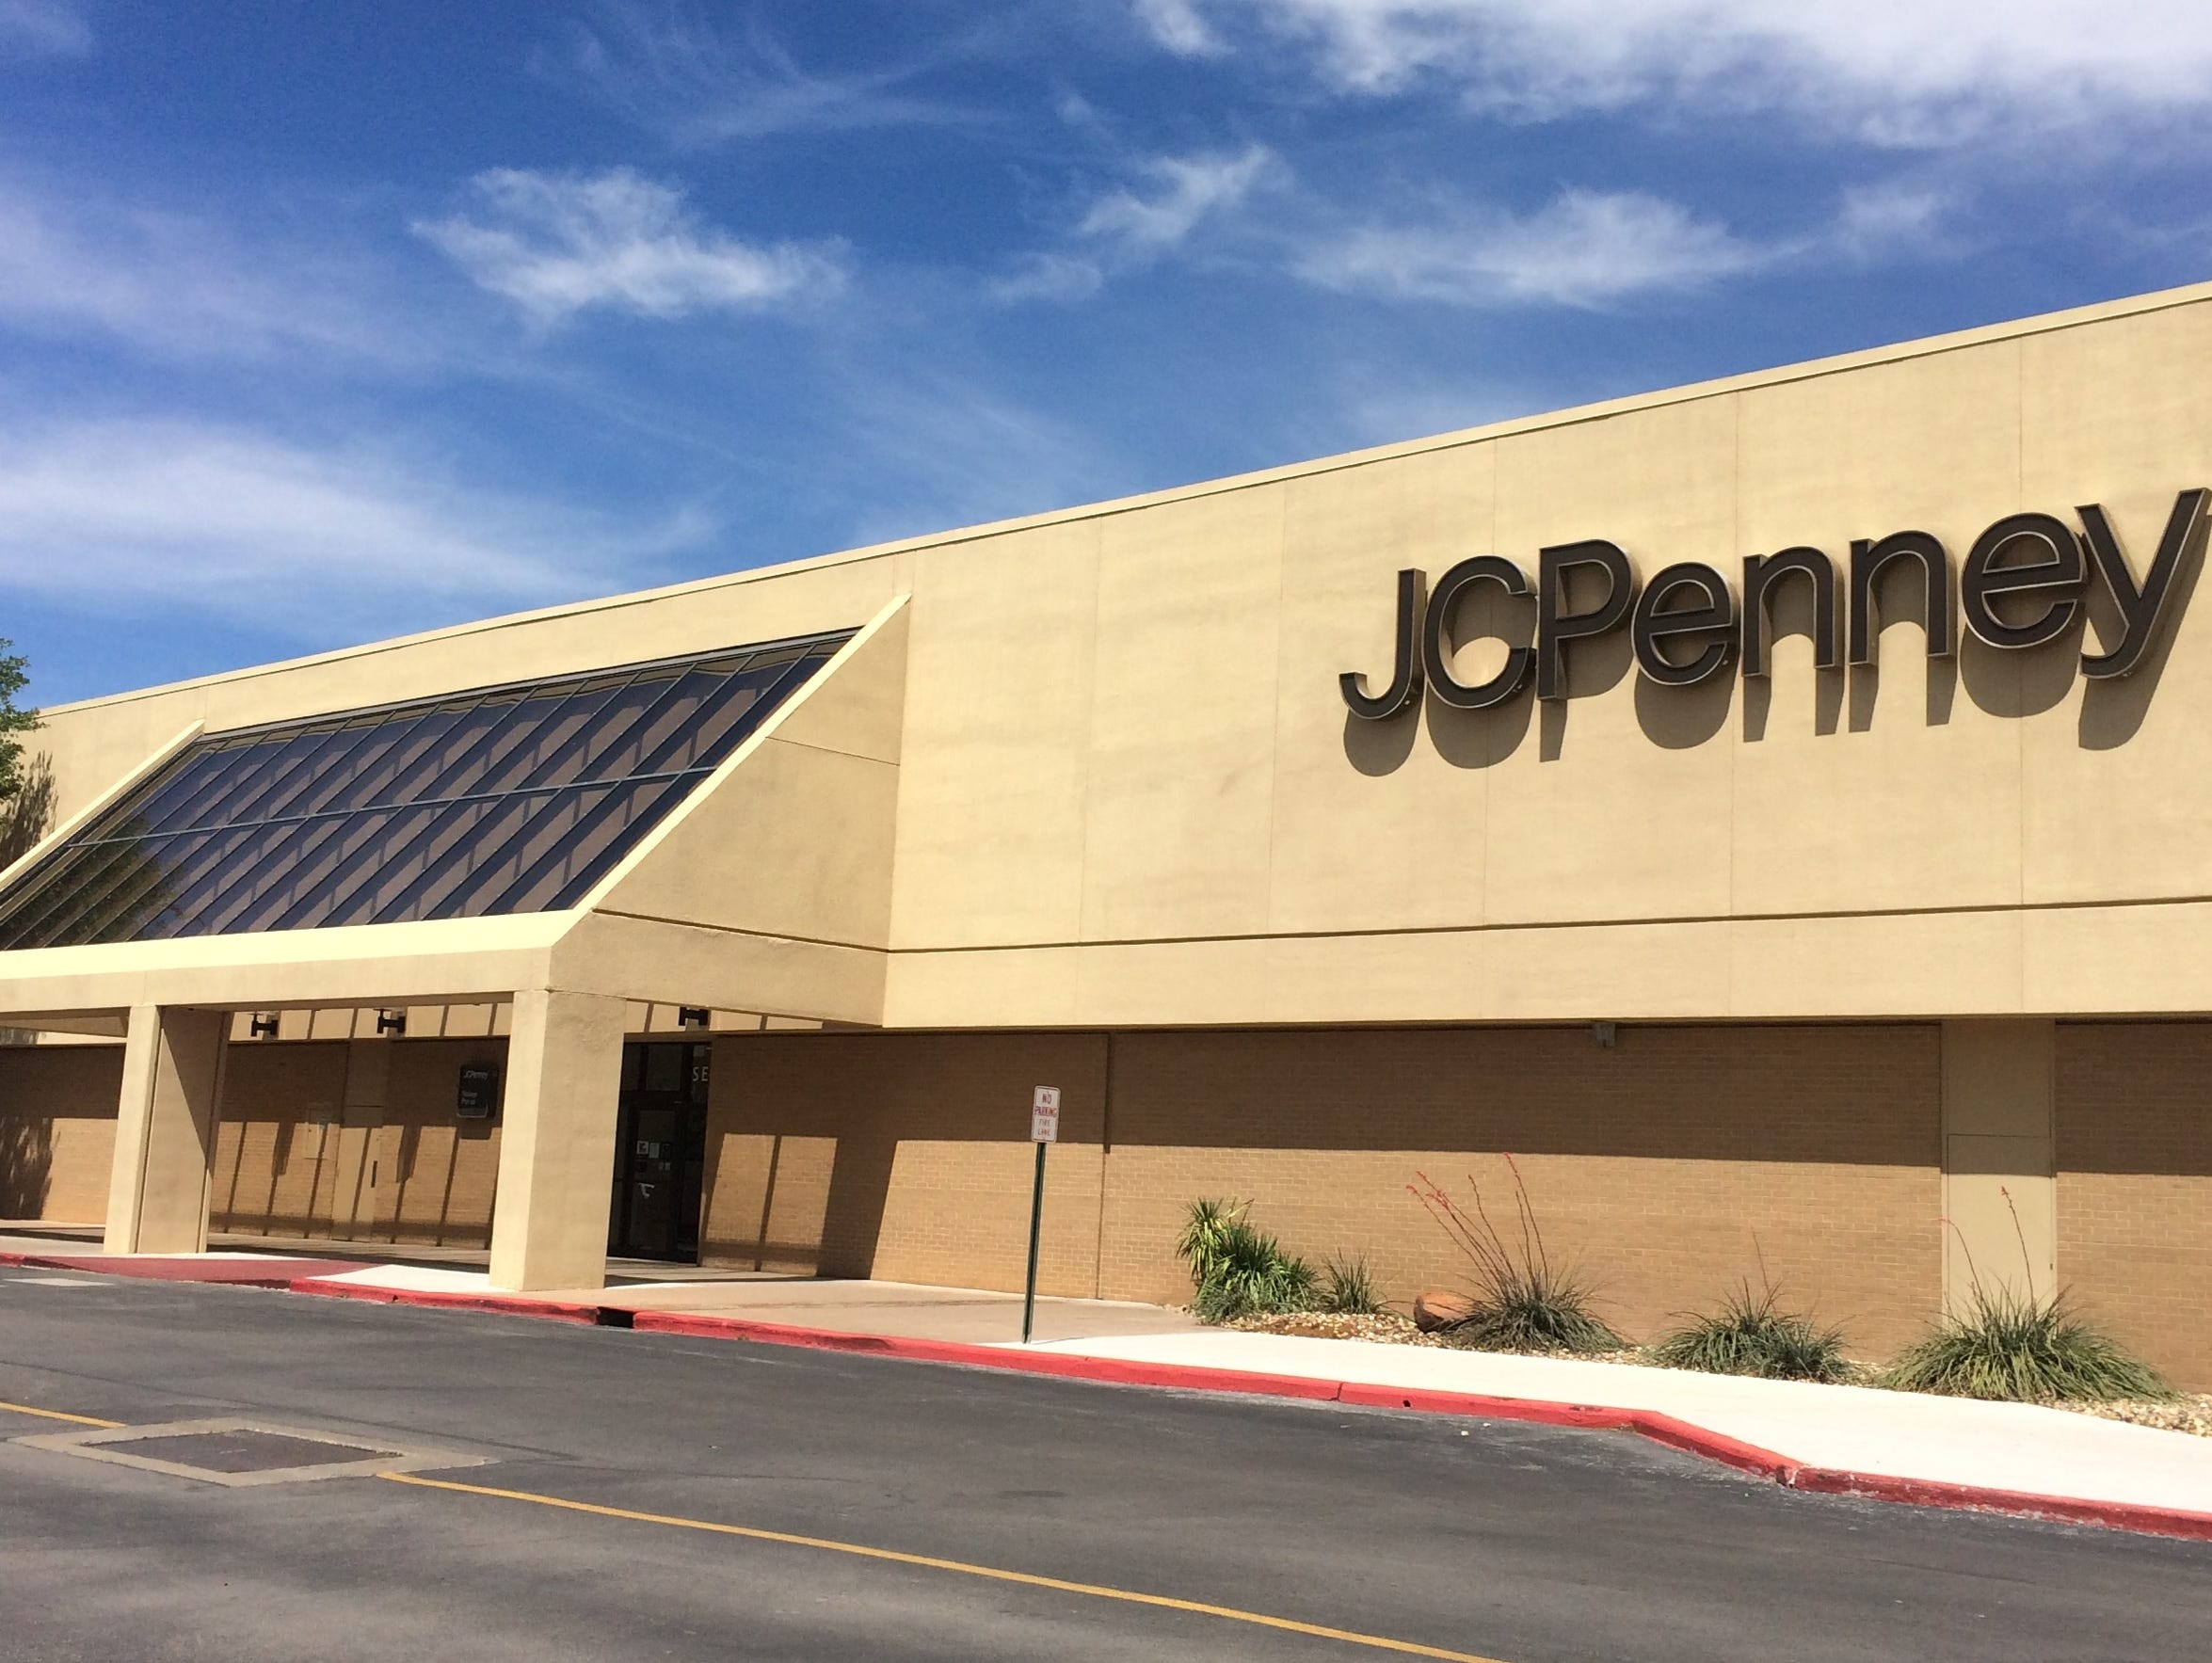 Jcp credit center login - J C Penney Relocated Its Abilene Stores In 1979 When